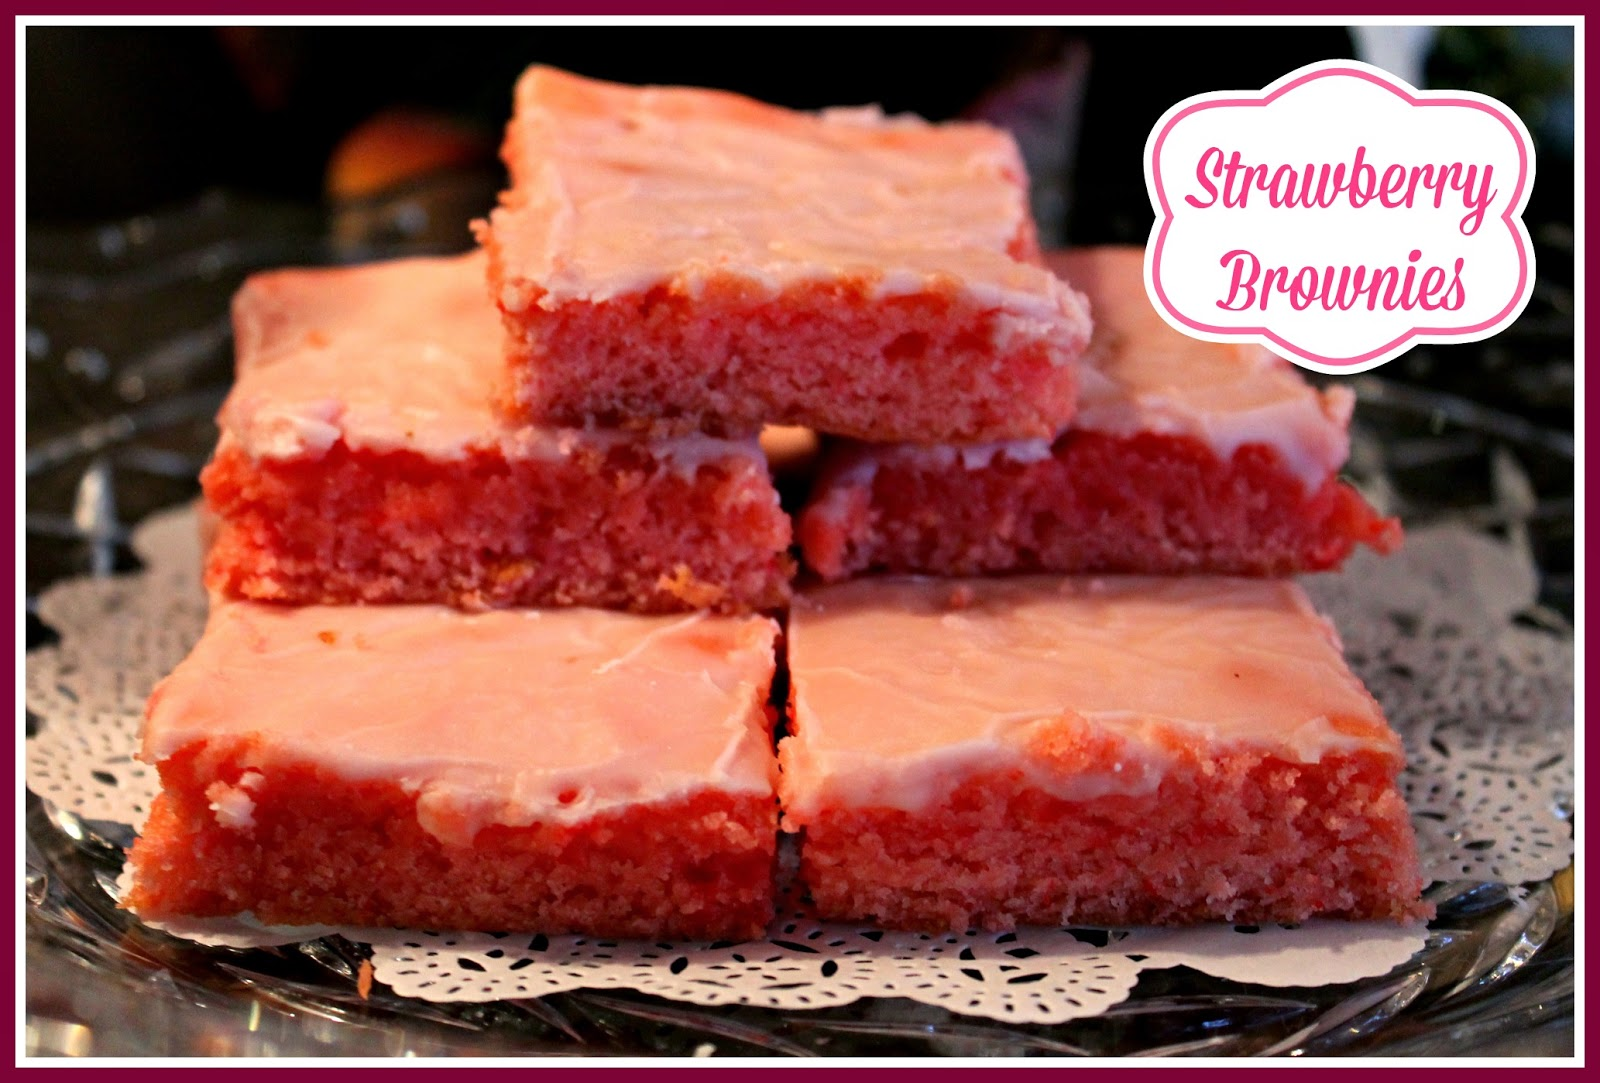 Strawberry Gooey Butter Cake - This cake is so soft and delicious. It's made withs trawberry cake mix and is perfect for summer time!